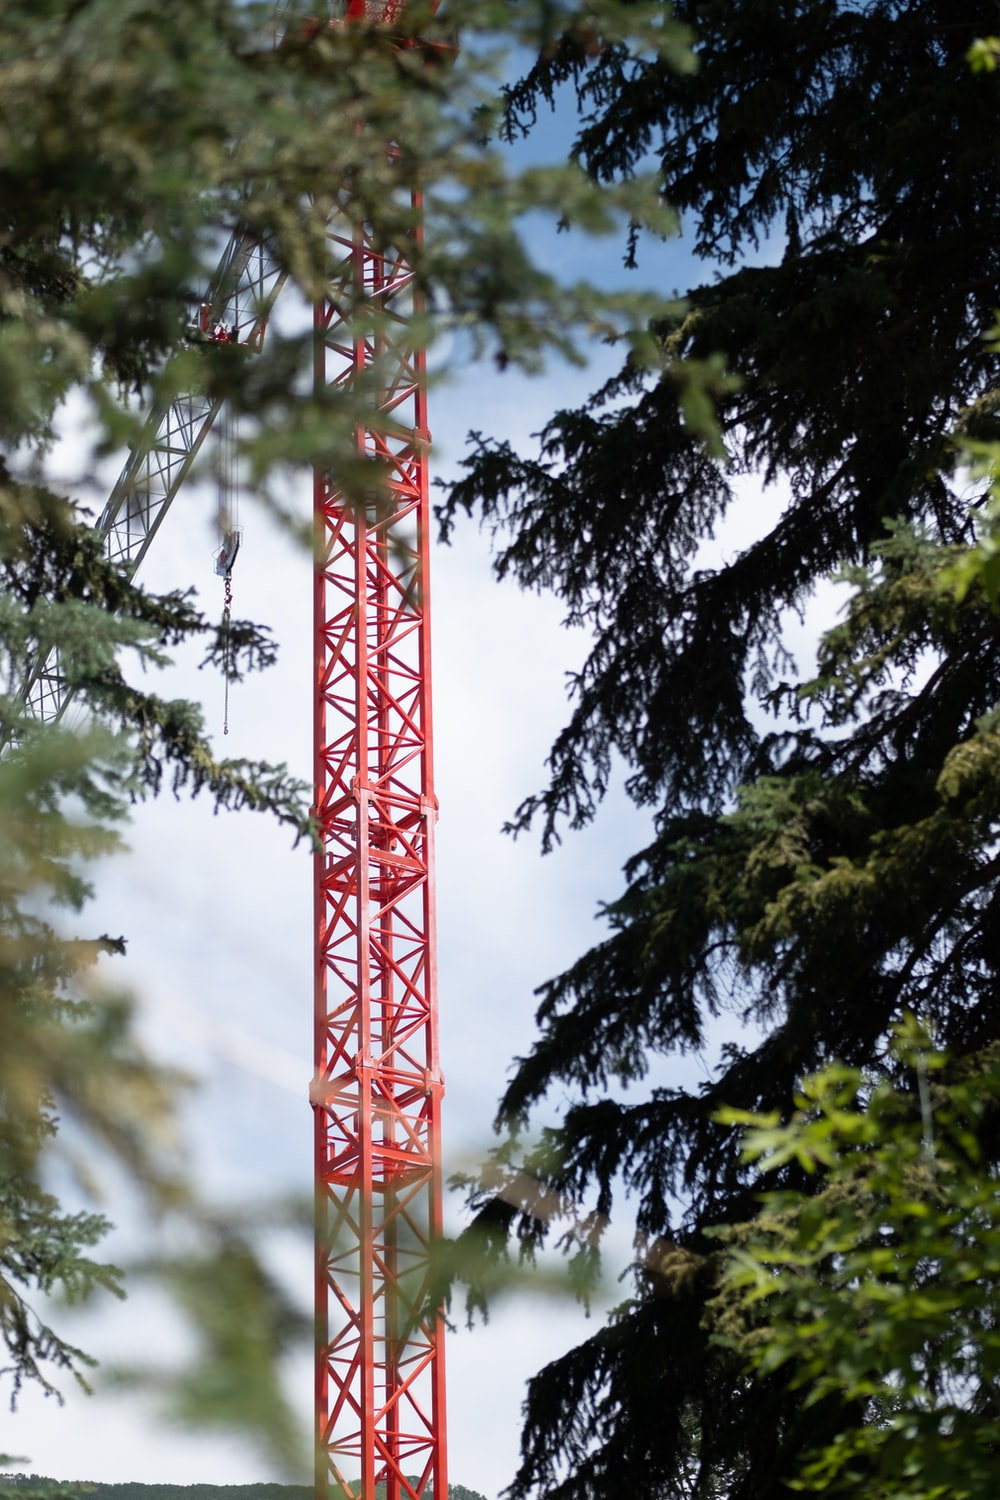 red tower near green trees during daytime